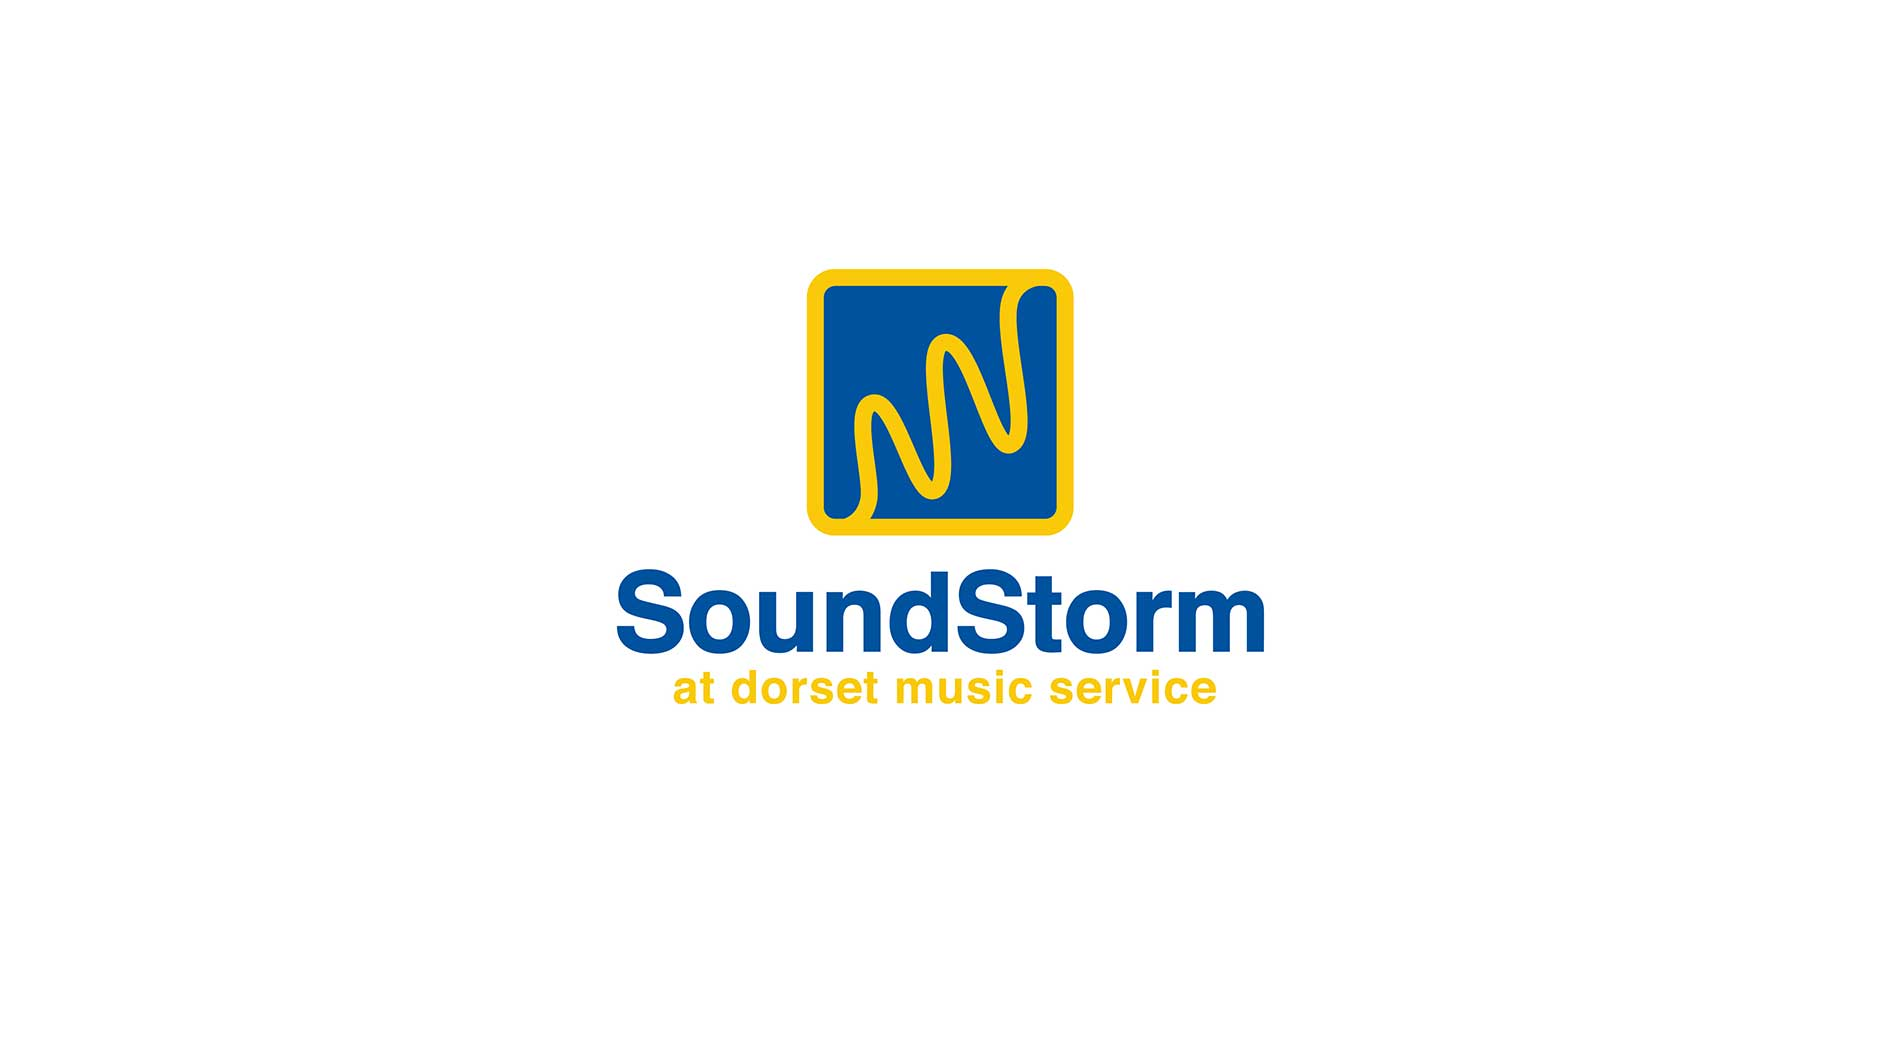 Soundstorm colour logo